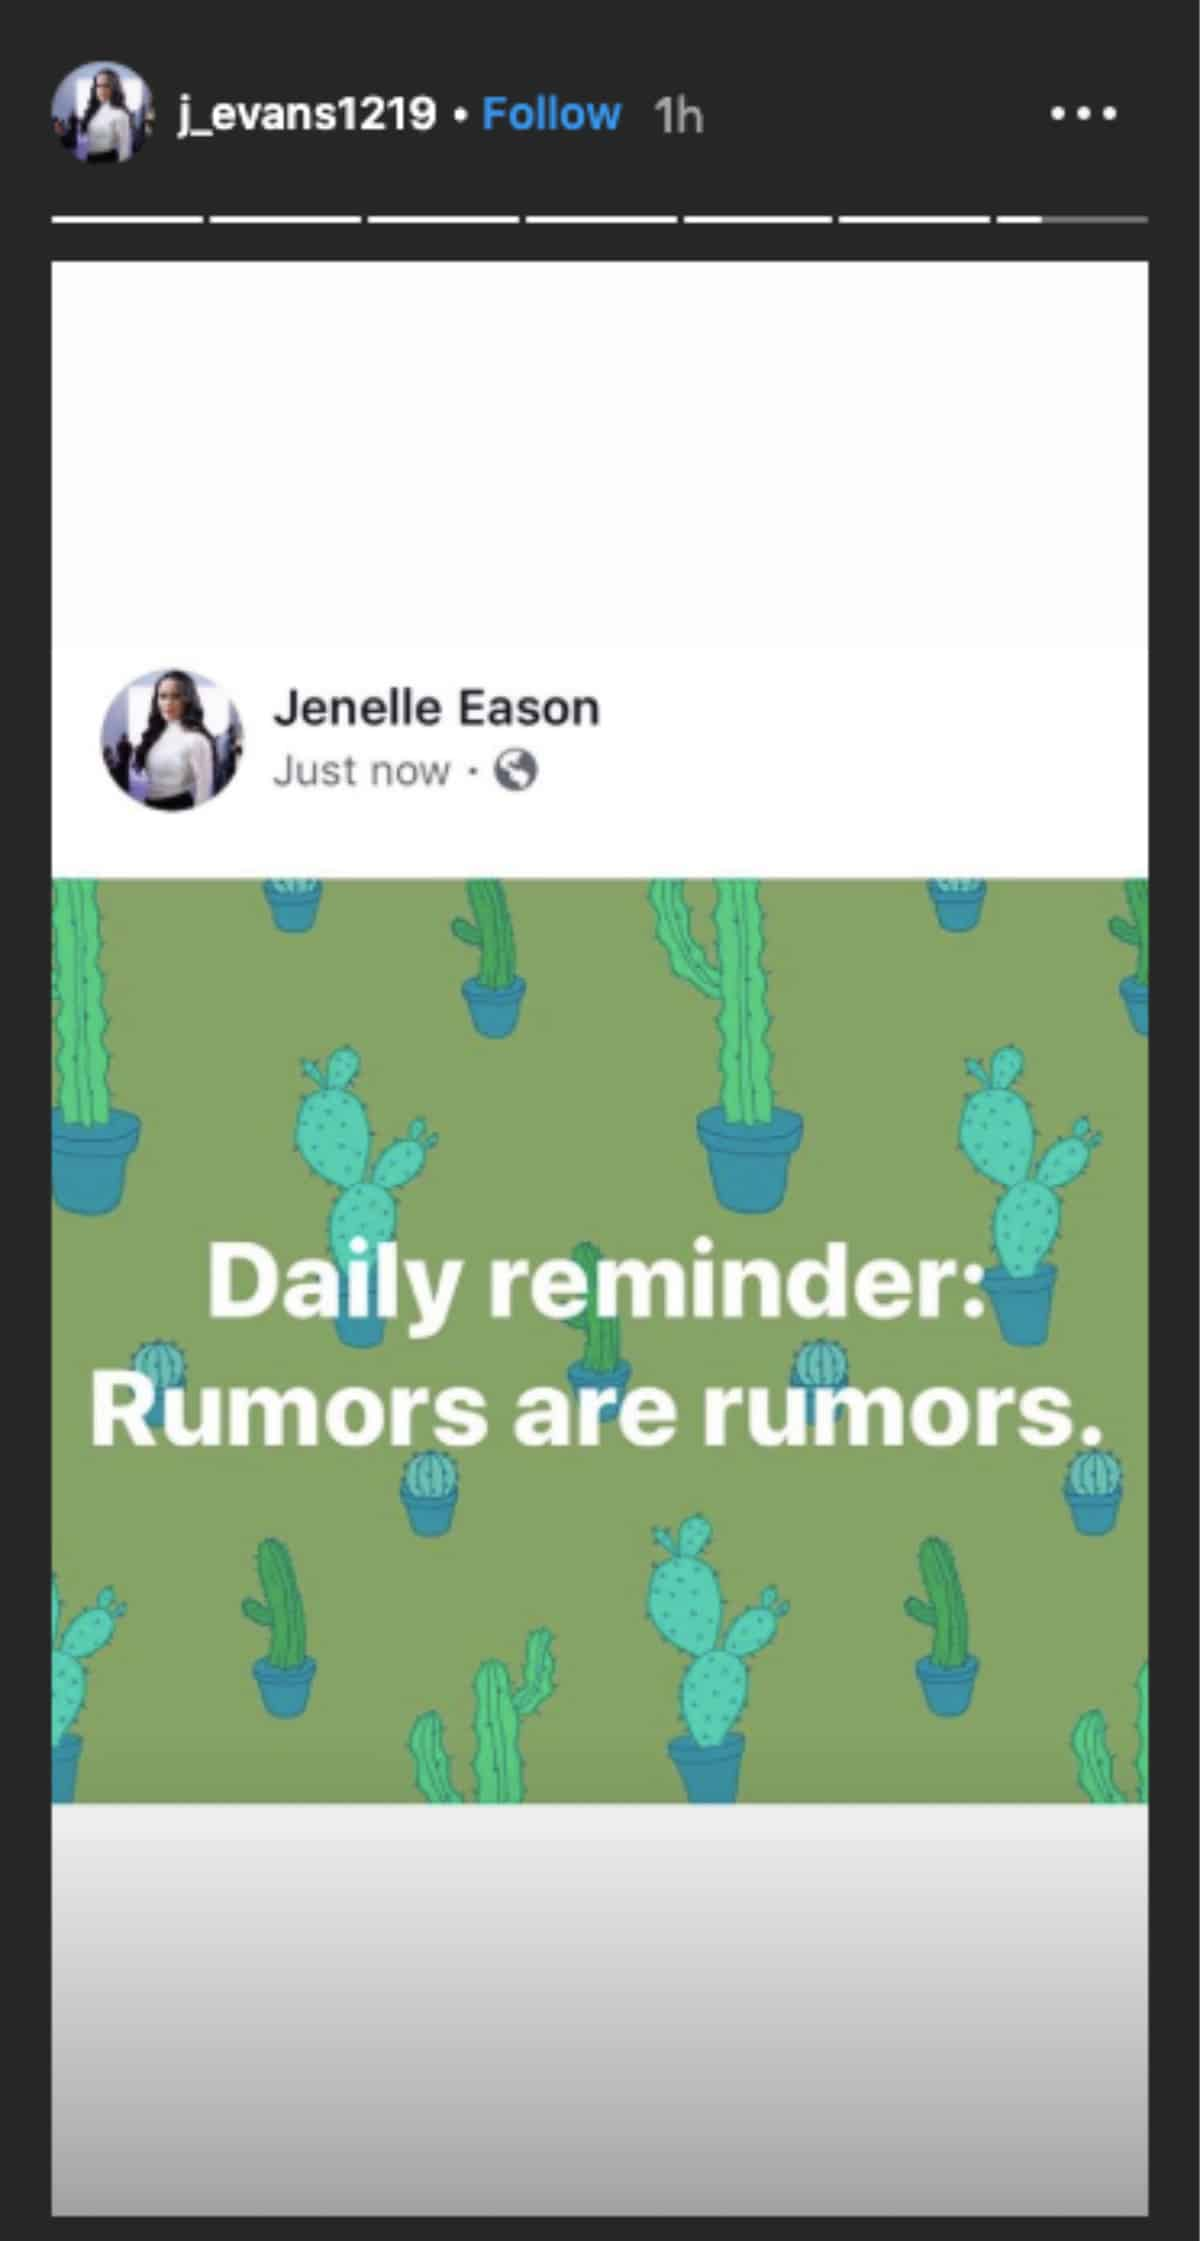 Jenelle Evans issues a reminder of sorts on her Instagram stories